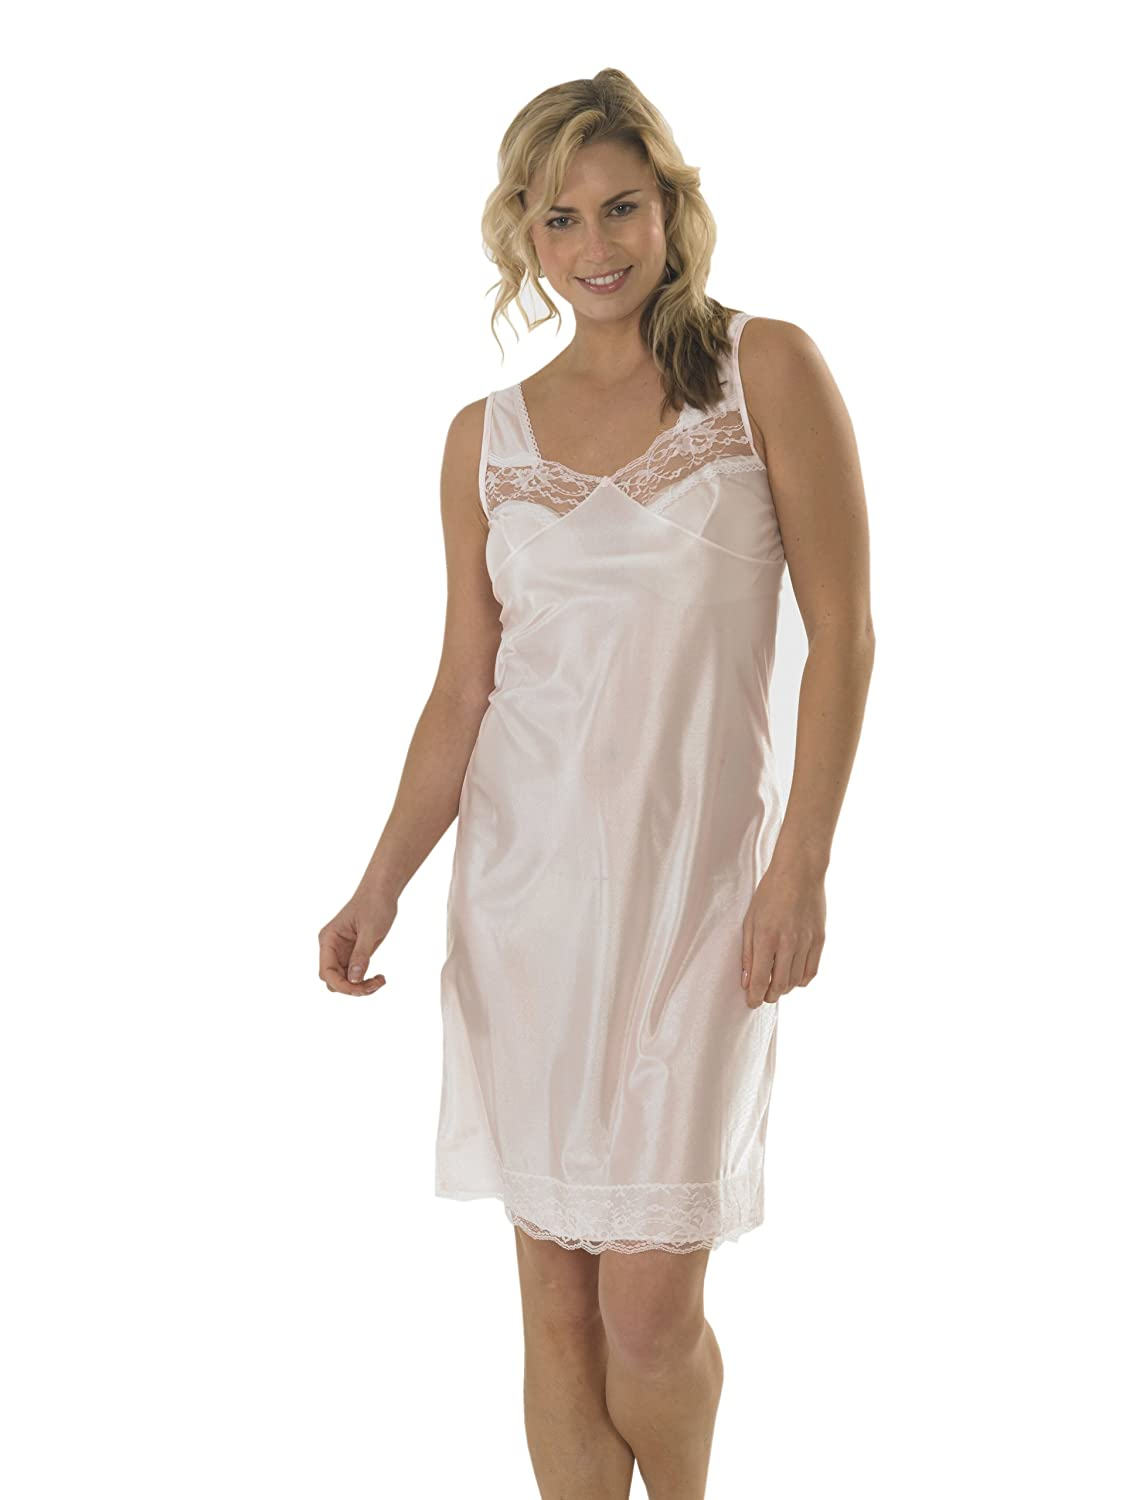 Sous robe femme blanche